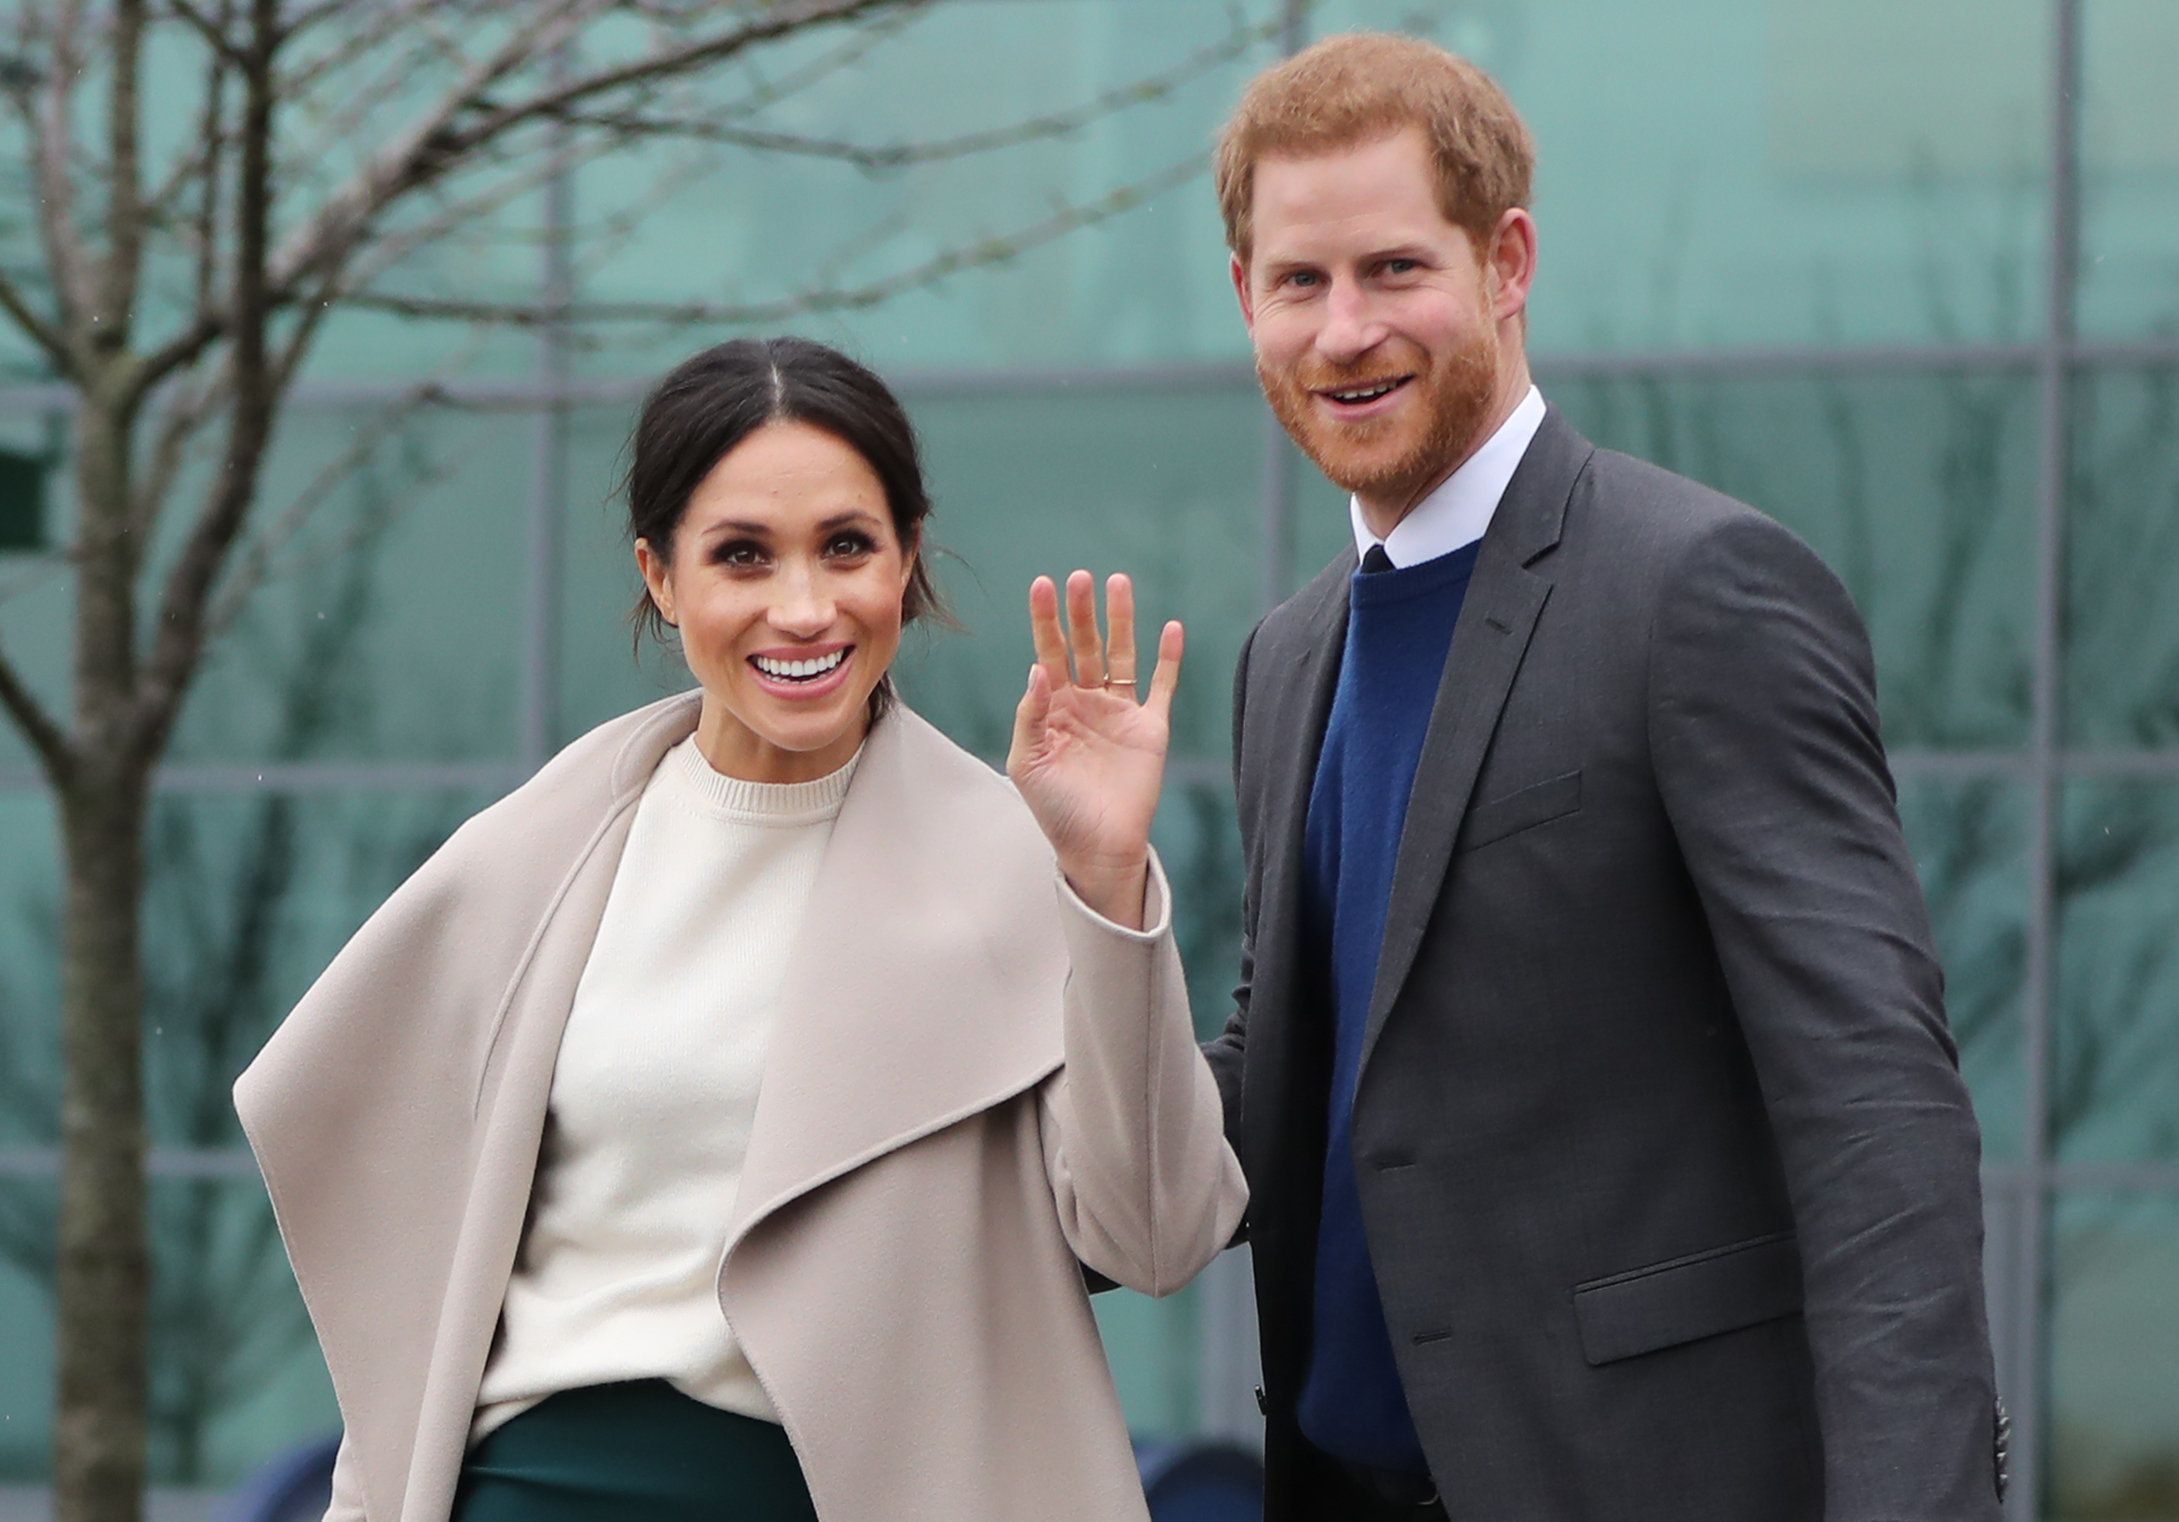 Meghan Markle and Prince Harry's wedding photographer revealed